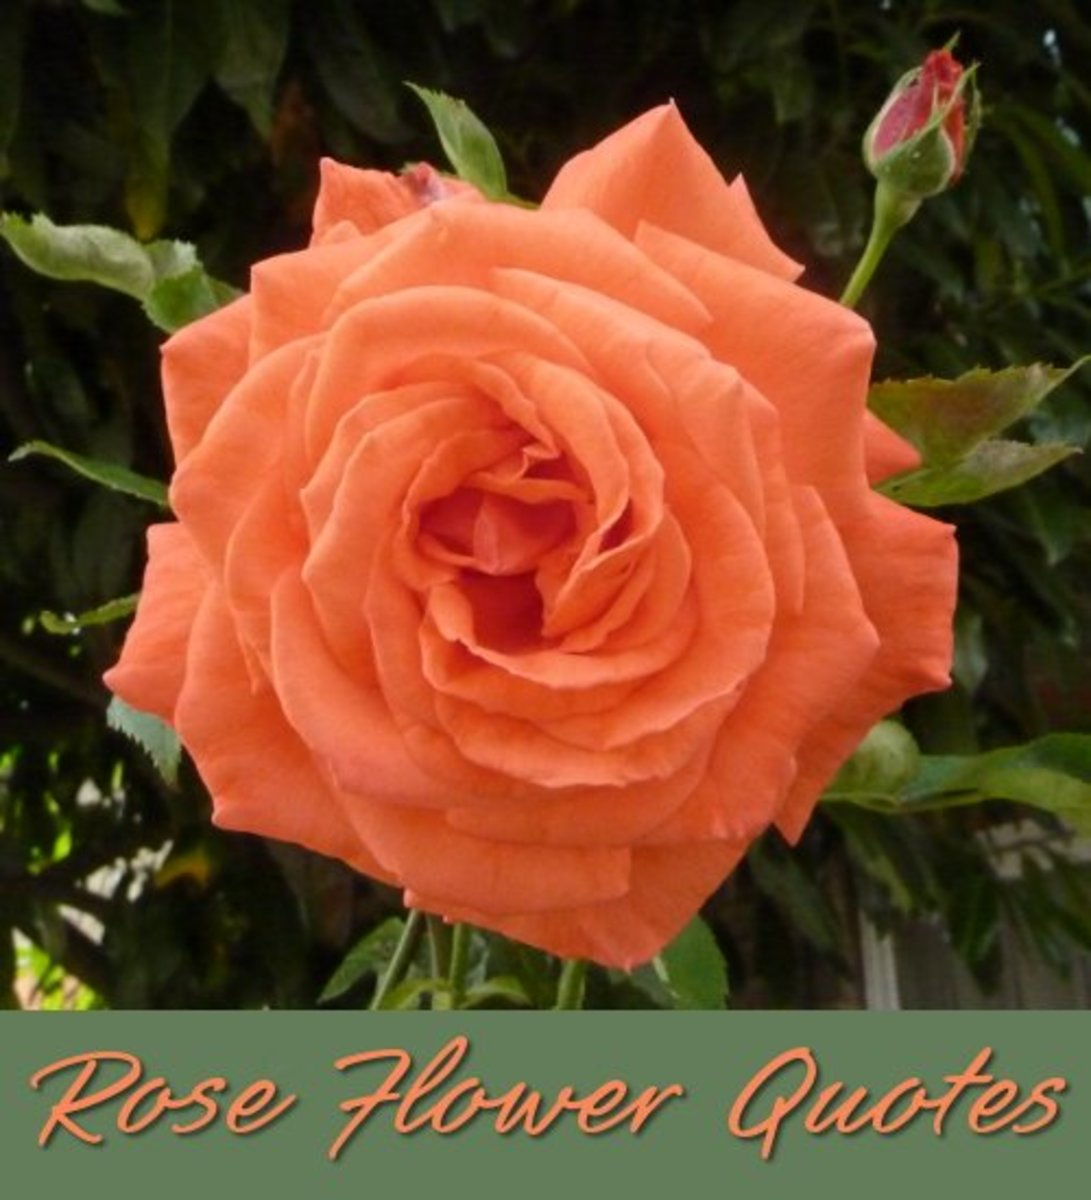 Rose flower quotations and sentiments page